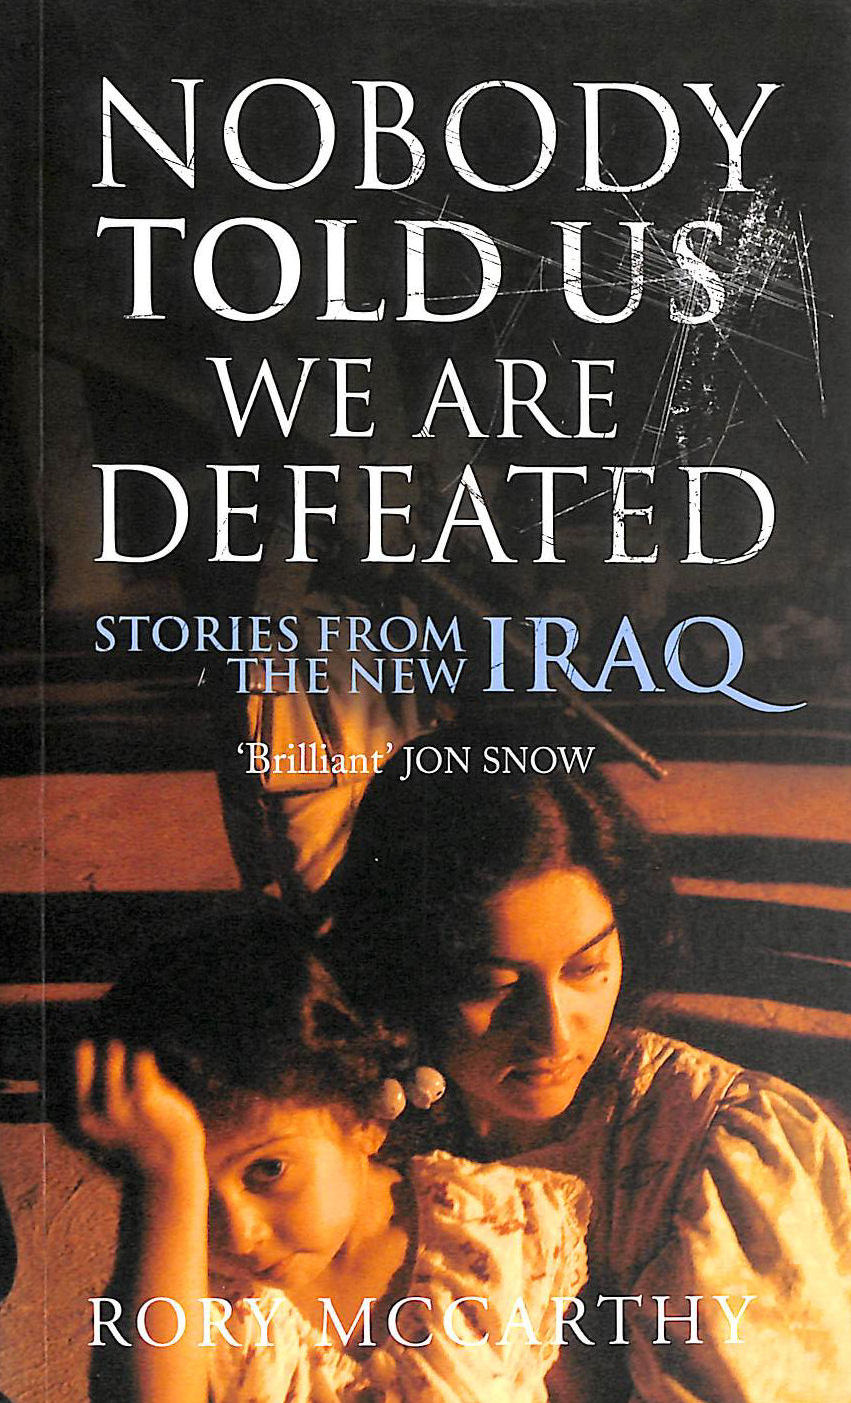 Image for Nobody Told Us We Are Defeated: Stories From The New Iraq (Chatto & Windus Paperback Original)